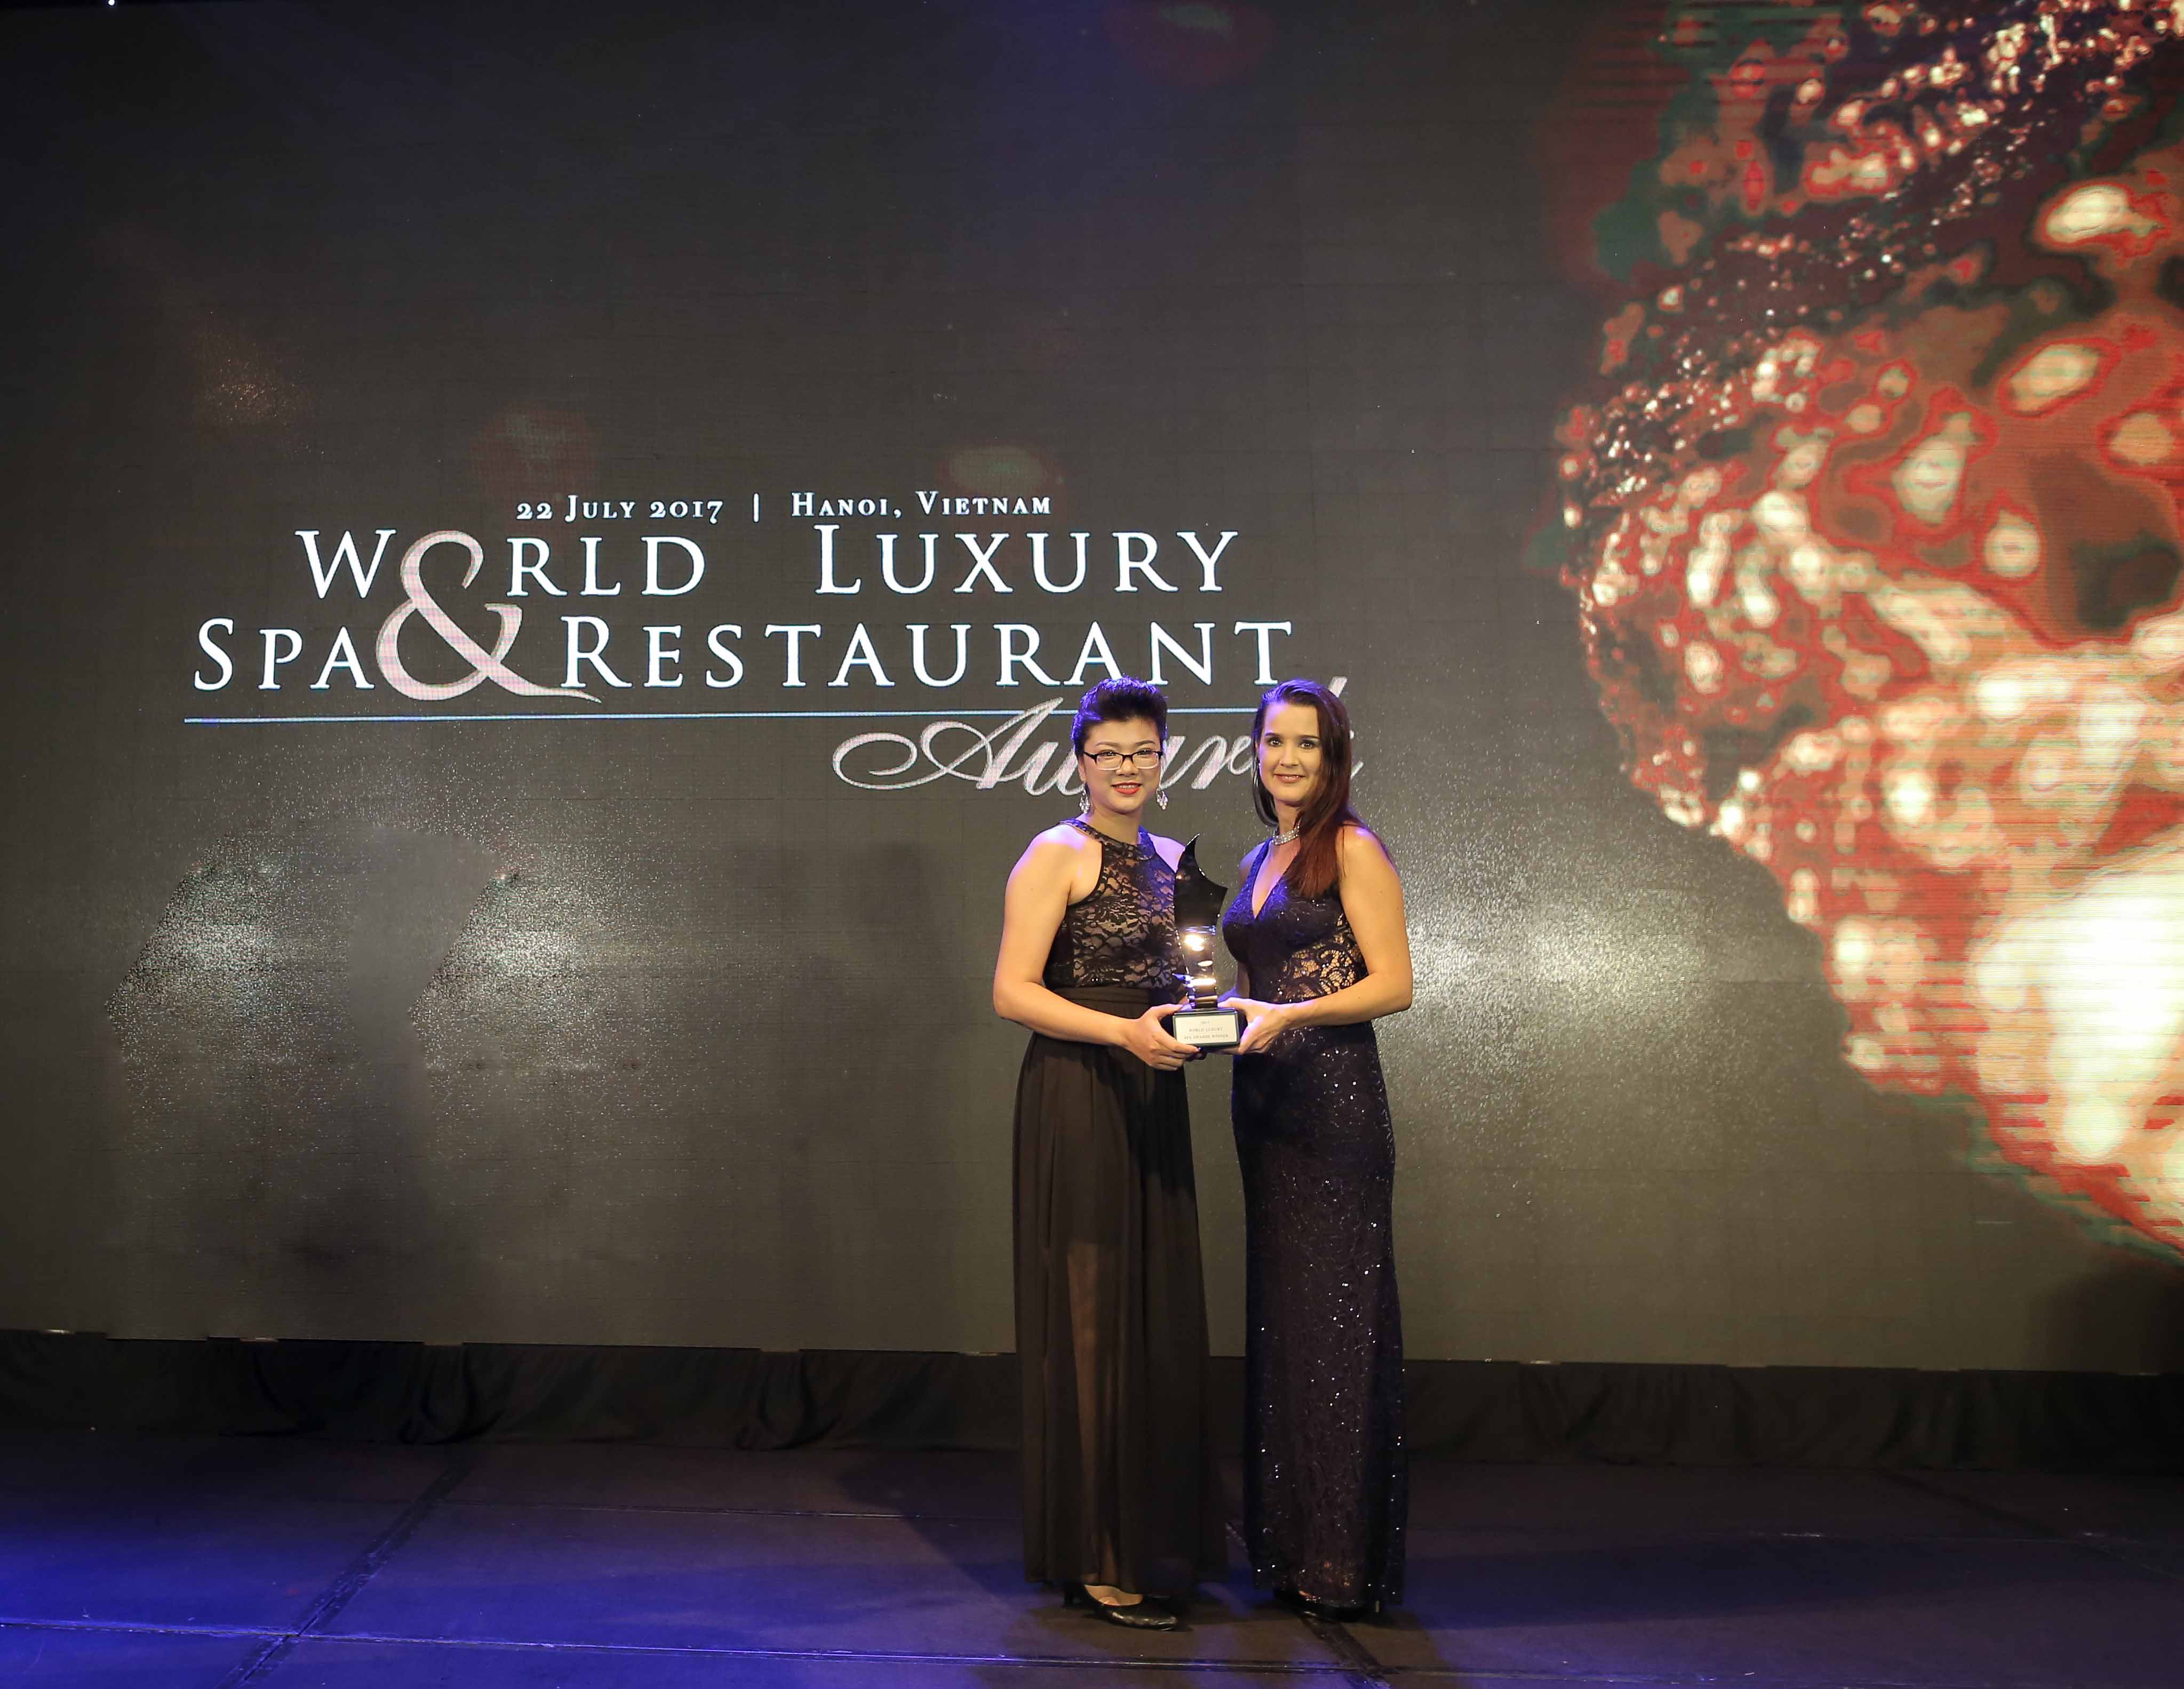 ms-fiona-phan-u-director-of-recreation-and-spa-excited-to-receive-the-spa-awards